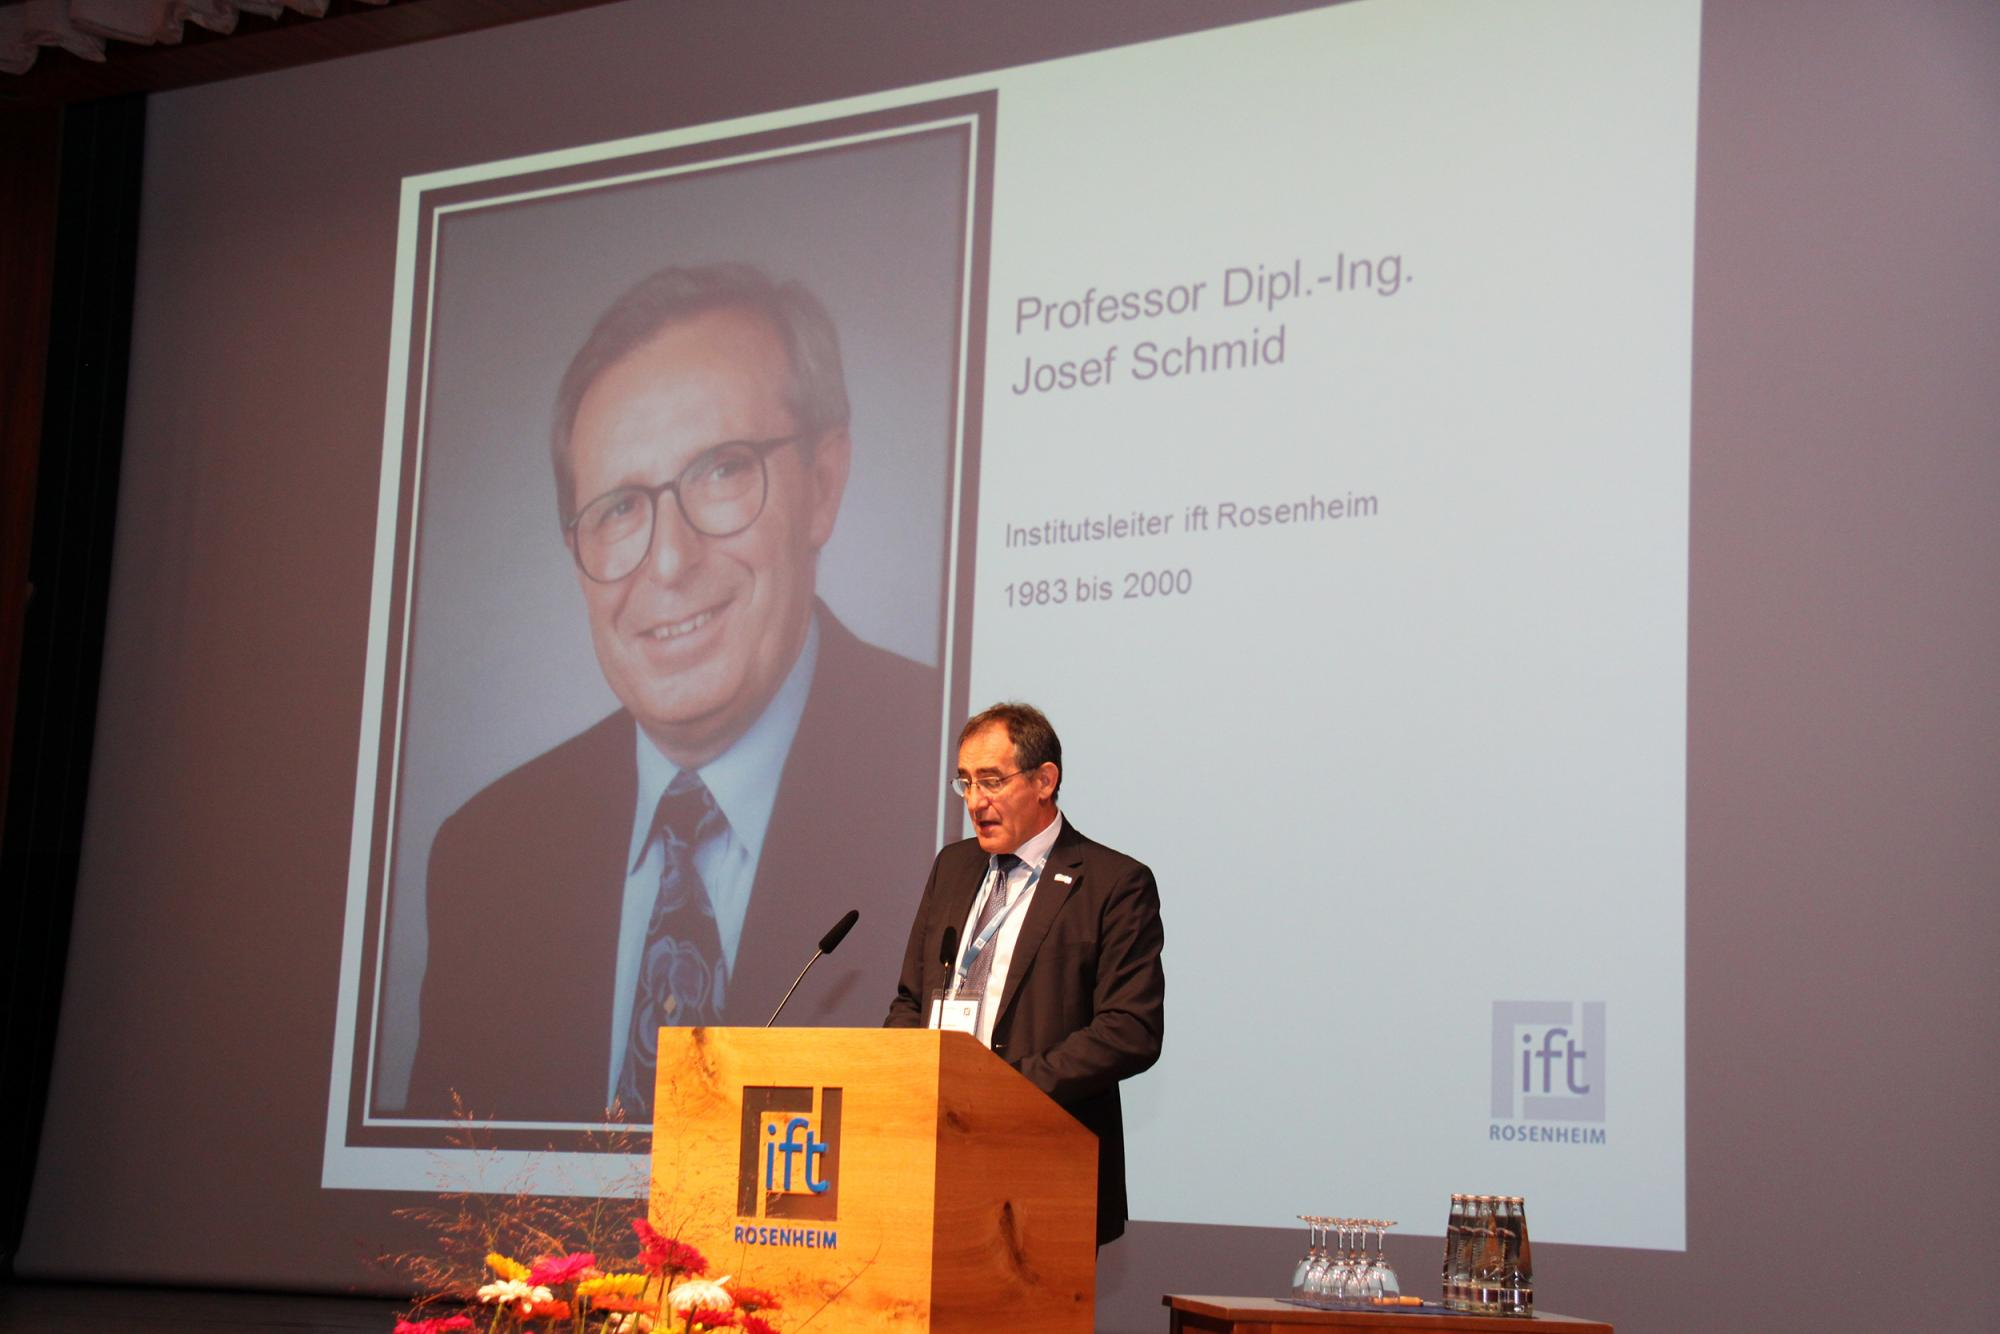 Chairman of the ift Board of Directors, Bernhard Helbing inaugurating the 44 International Rosenheim Window & Facade Conference and also remembering the Head of the Institute for a long tenure, Prof. Josef Schmid, who had passed away suddenly in September. (Source: ift Rosenheim)